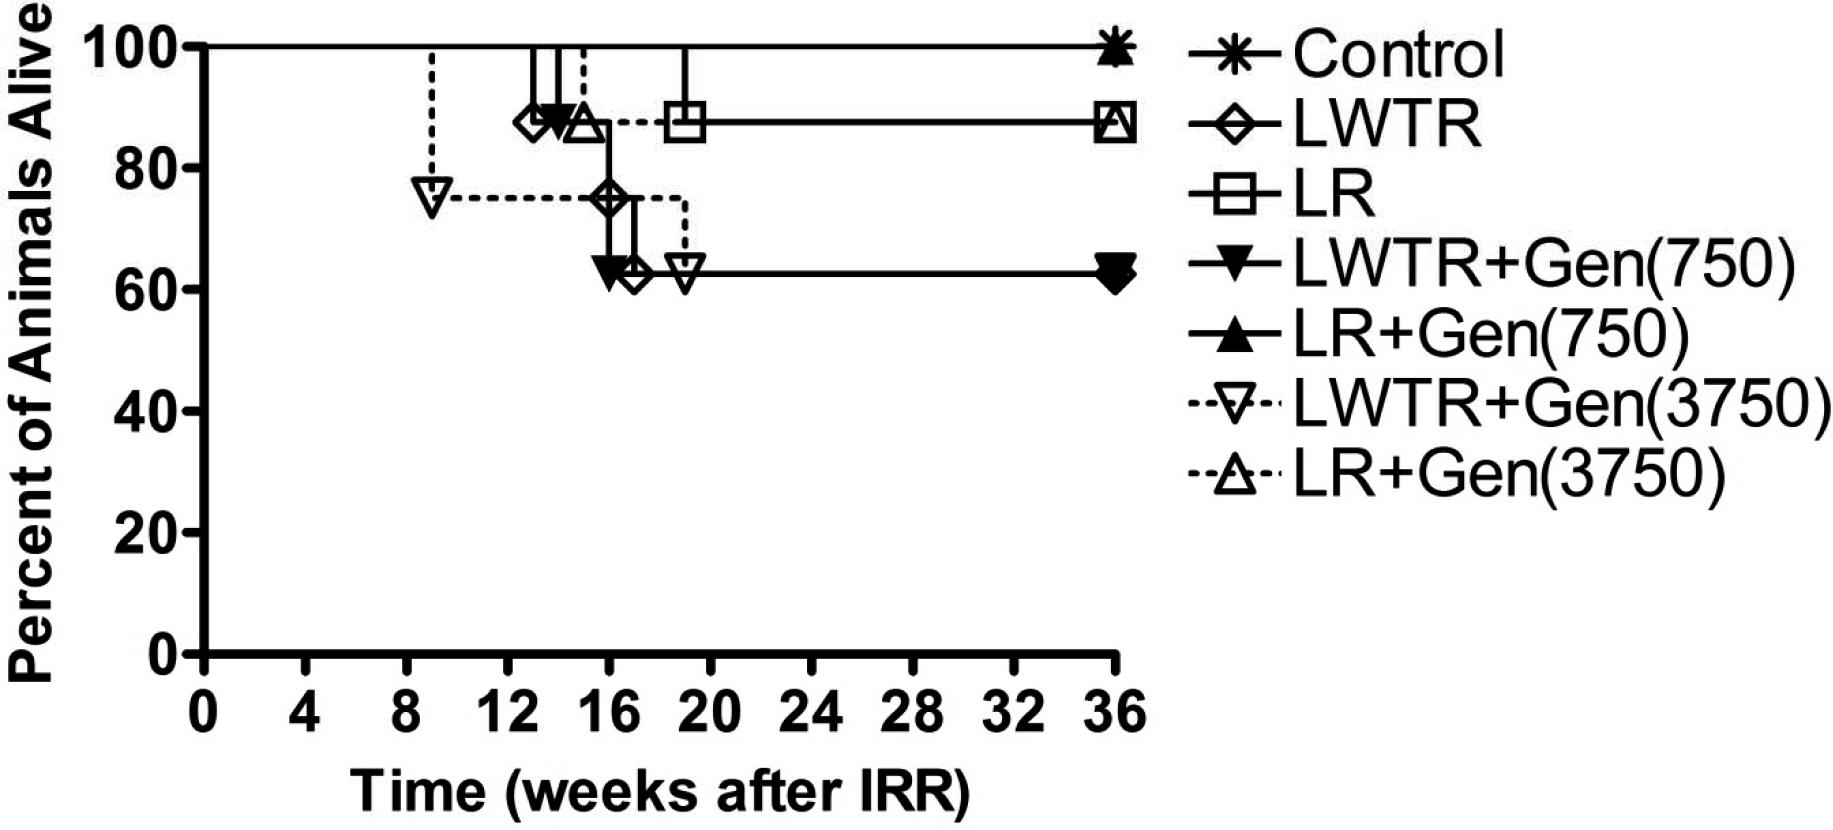 Mitigation of Lung Injury after Accidental Exposure to Radiation